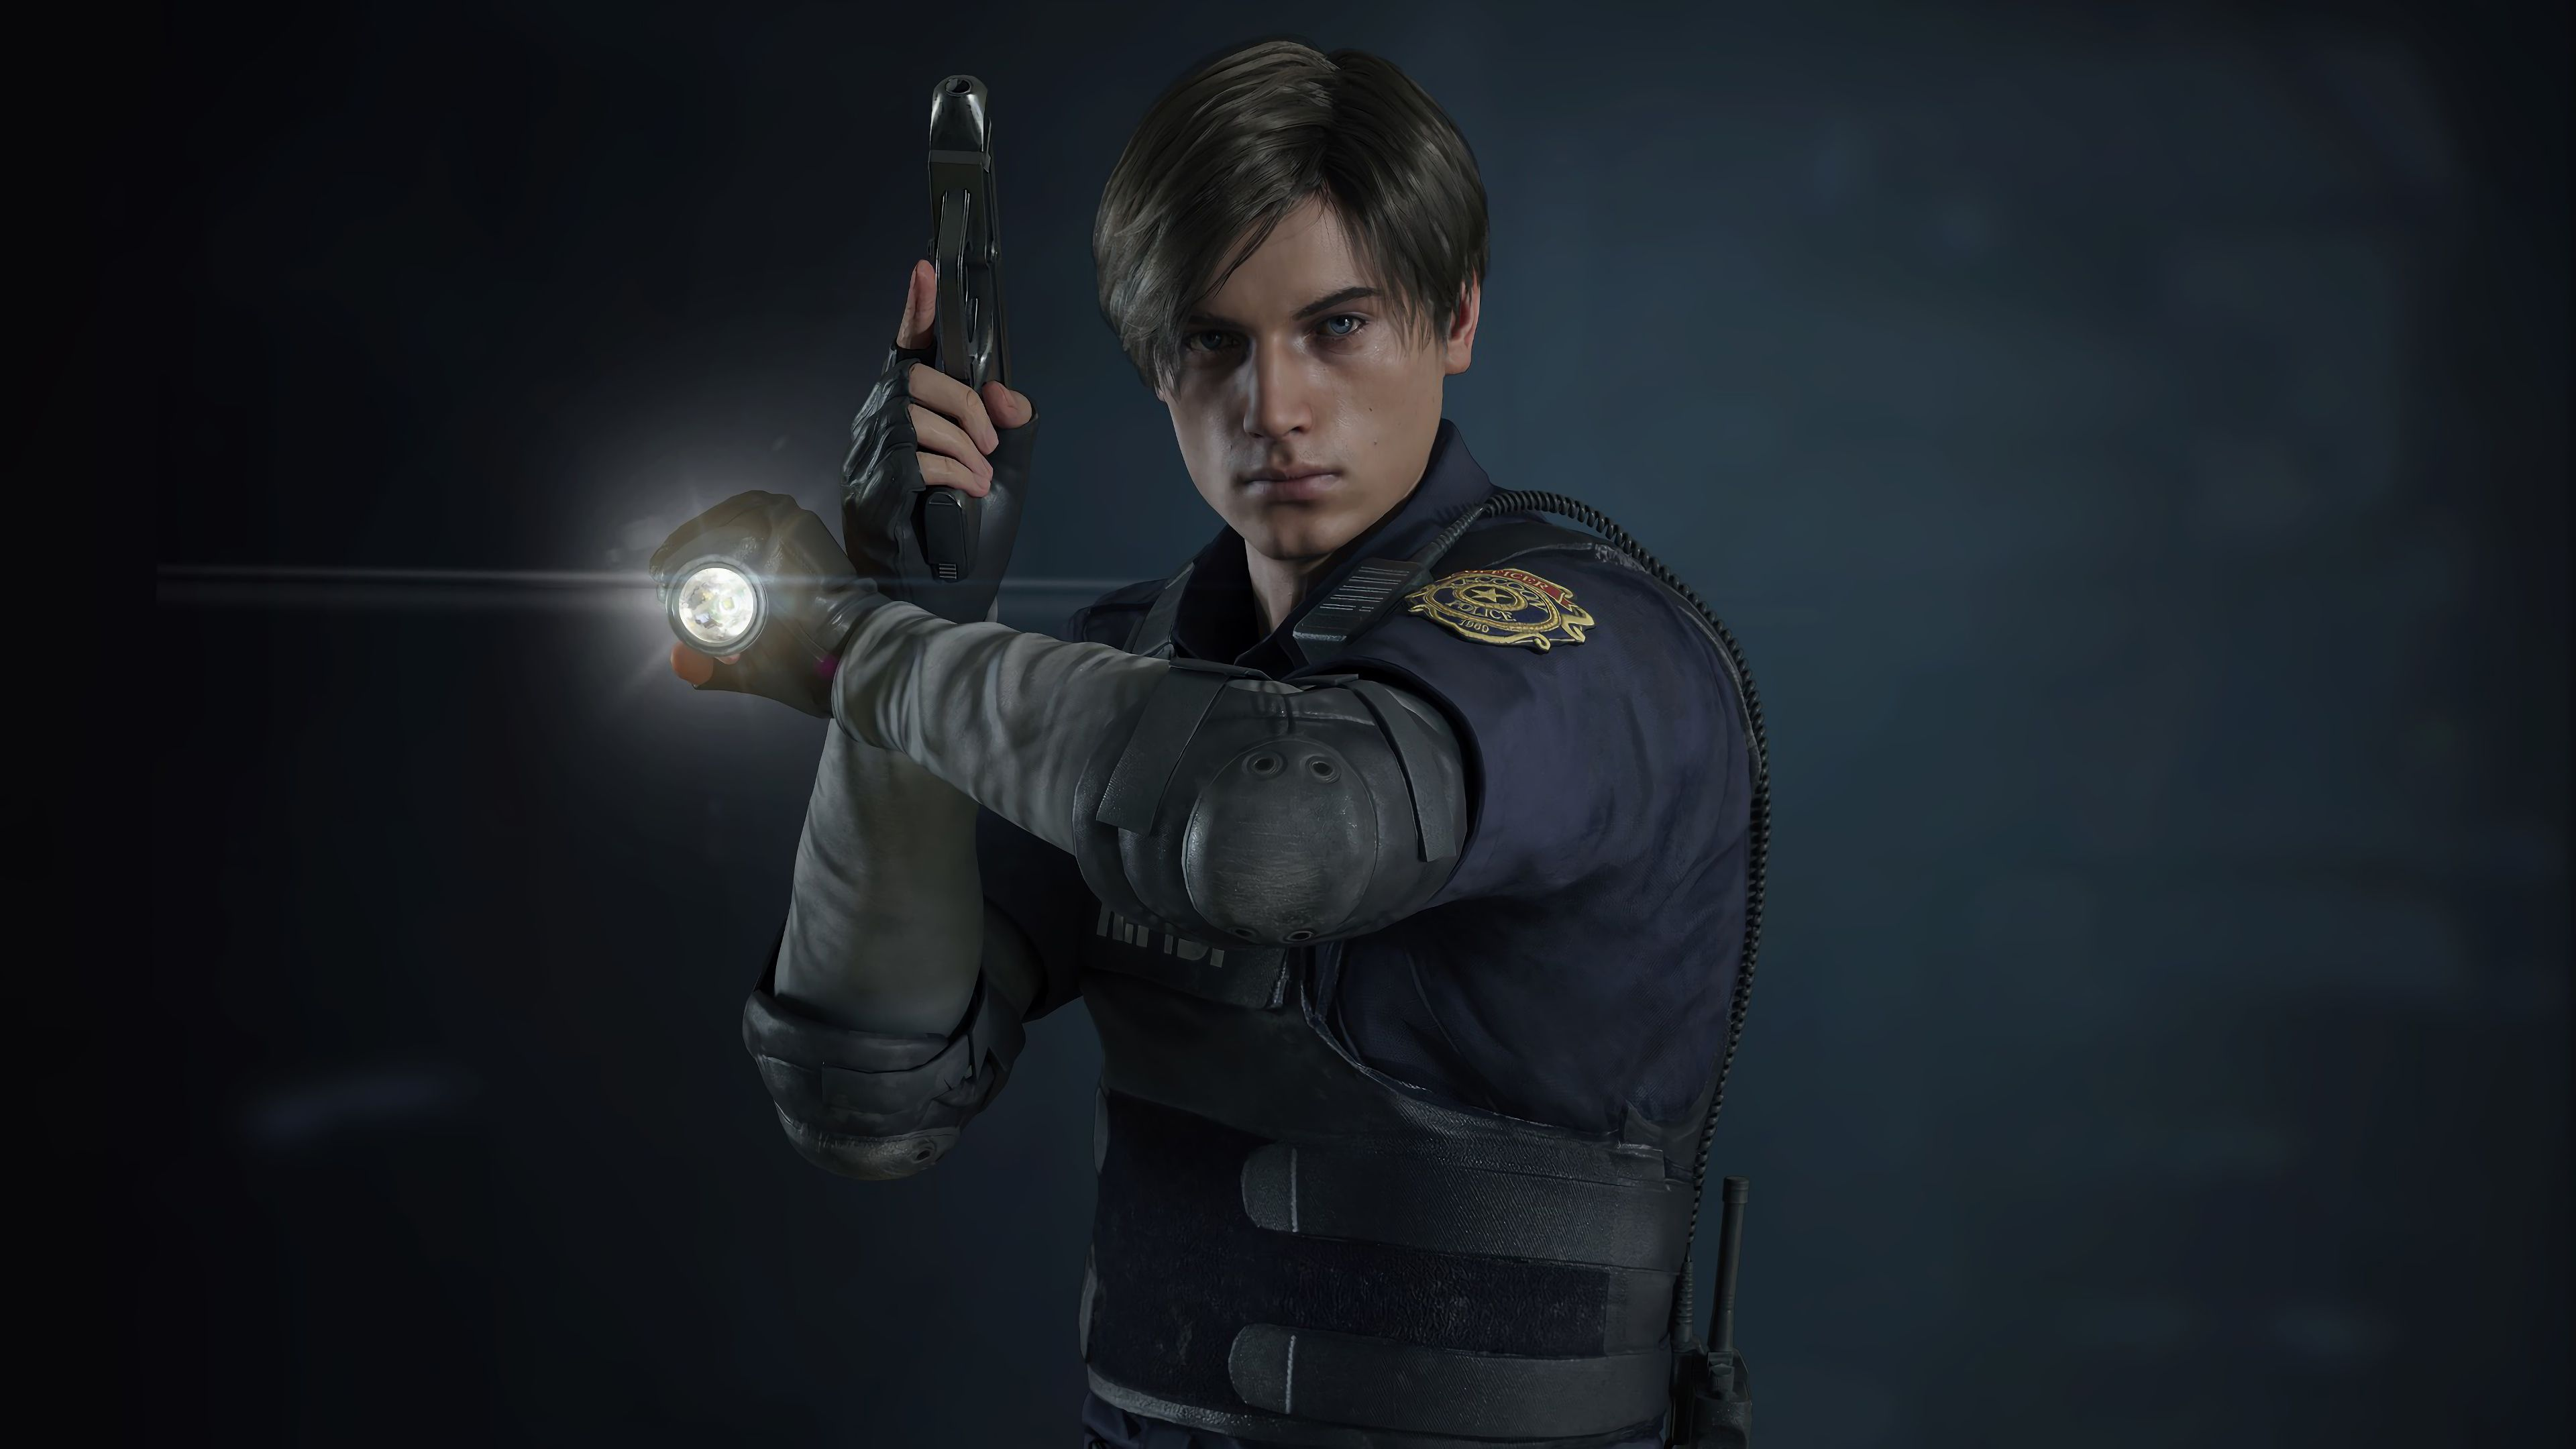 Leon Kennedy Wallpapers Top Free Leon Kennedy Backgrounds